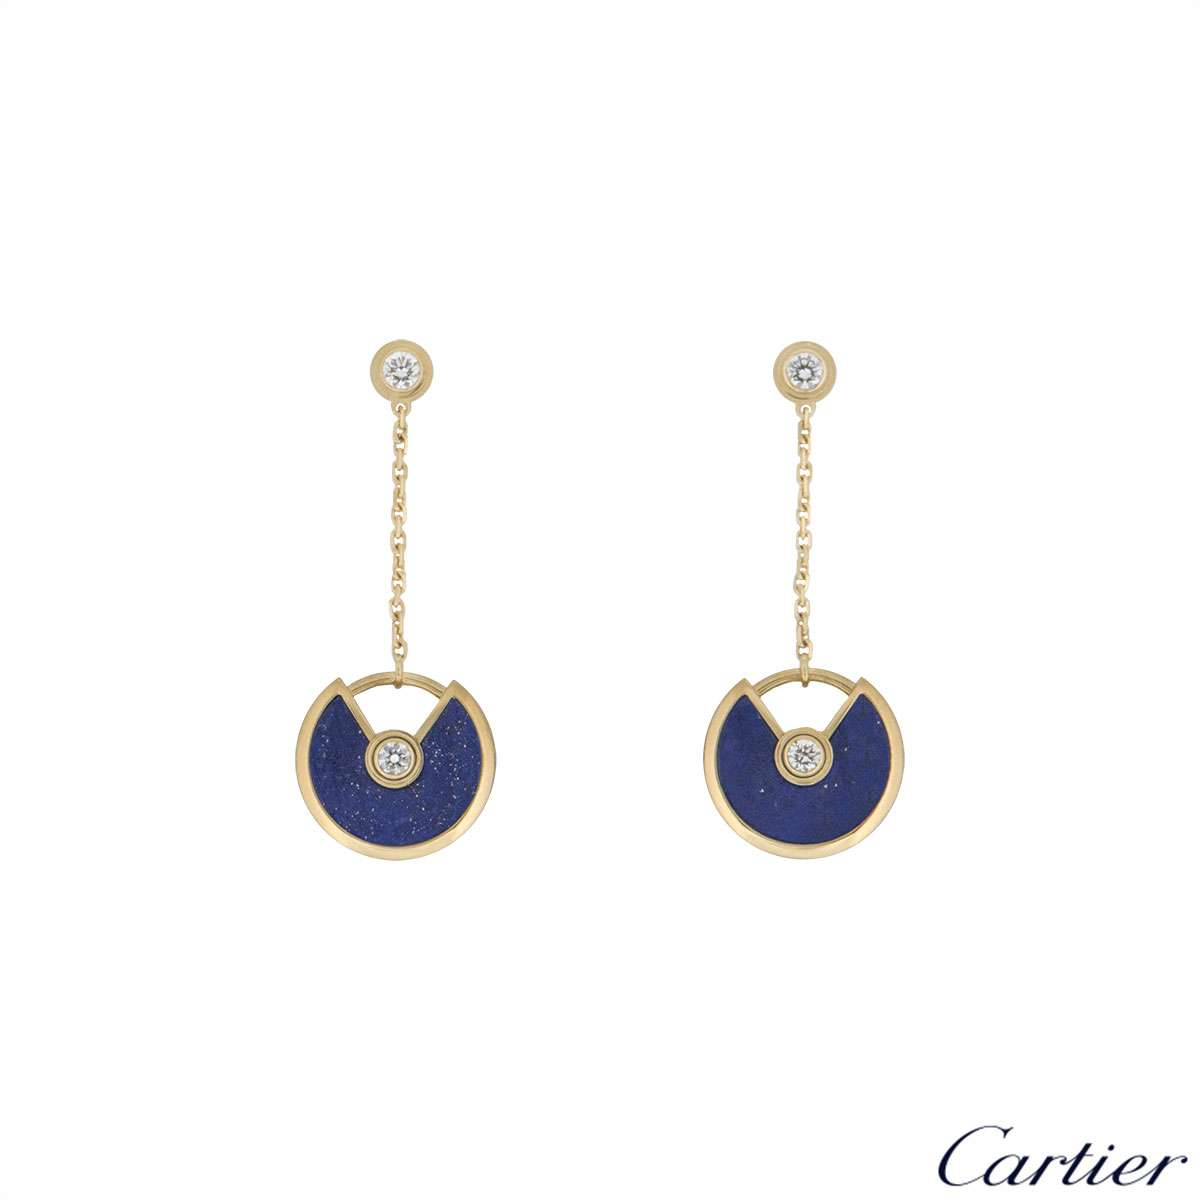 Cartier Yellow Gold Amulette de Cartier Earrings